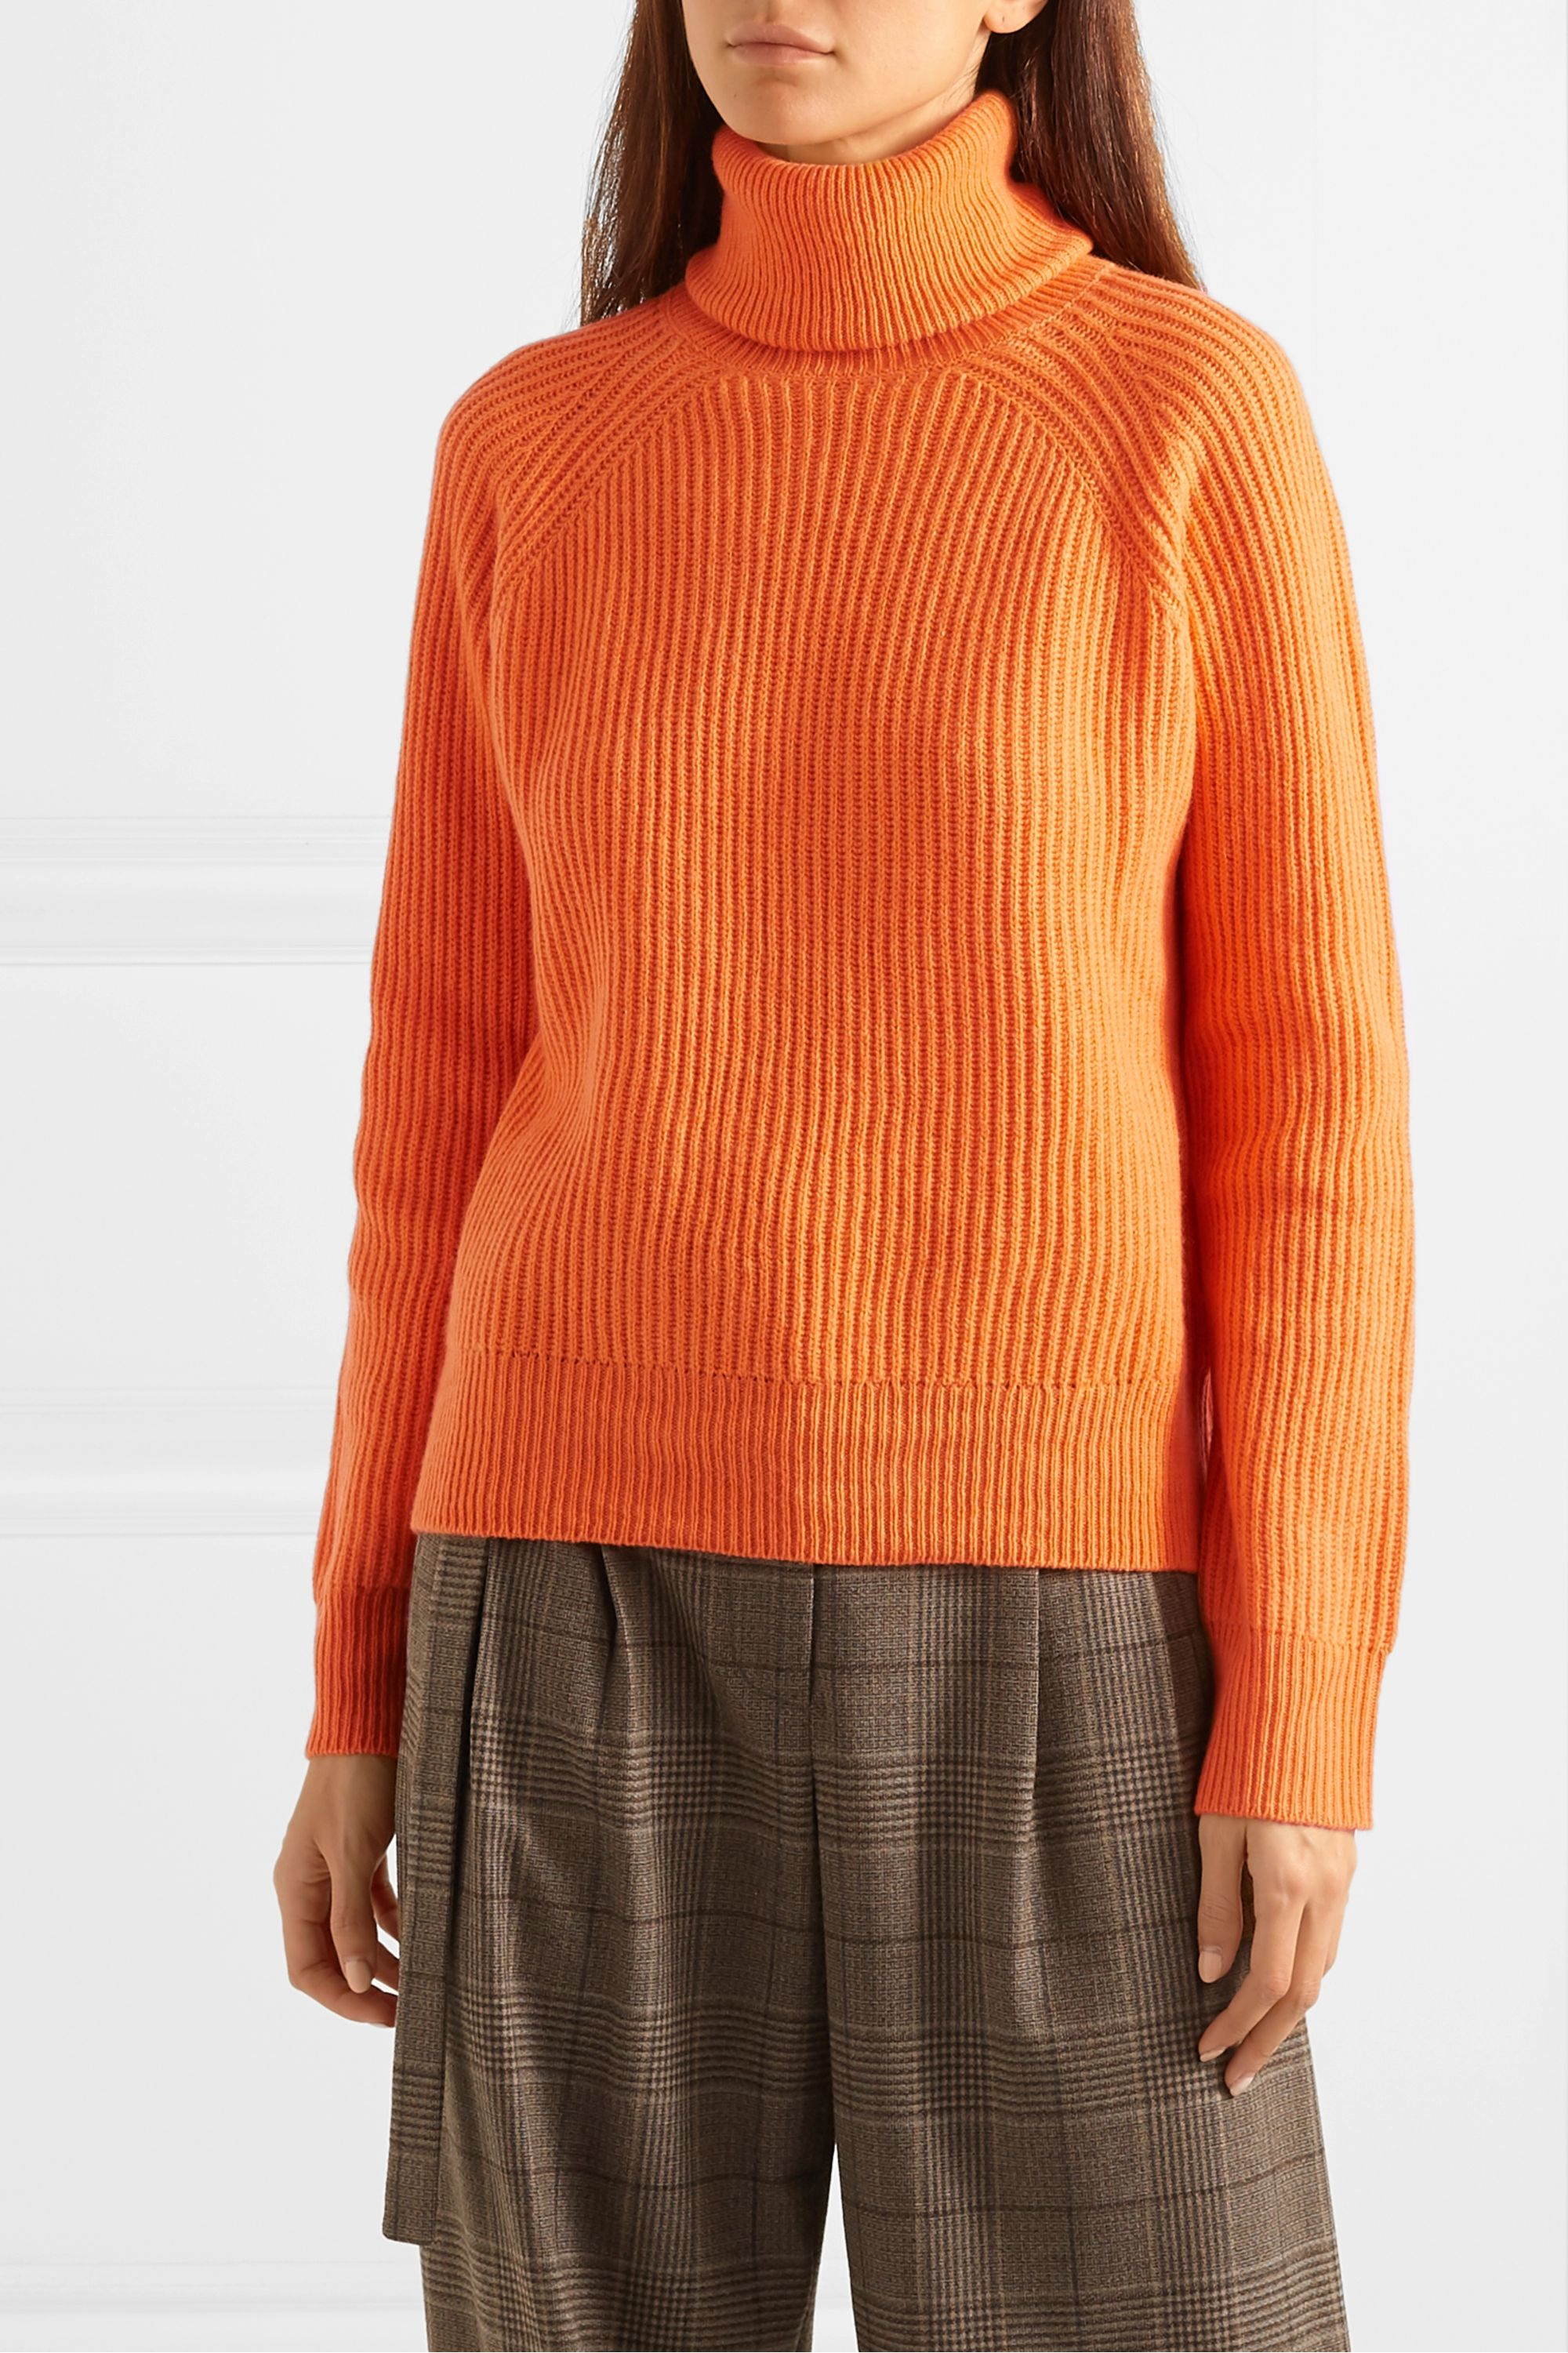 REMAIN Birger Christensen Jerome ribbed wool and cashmere-blend turtleneck sweater